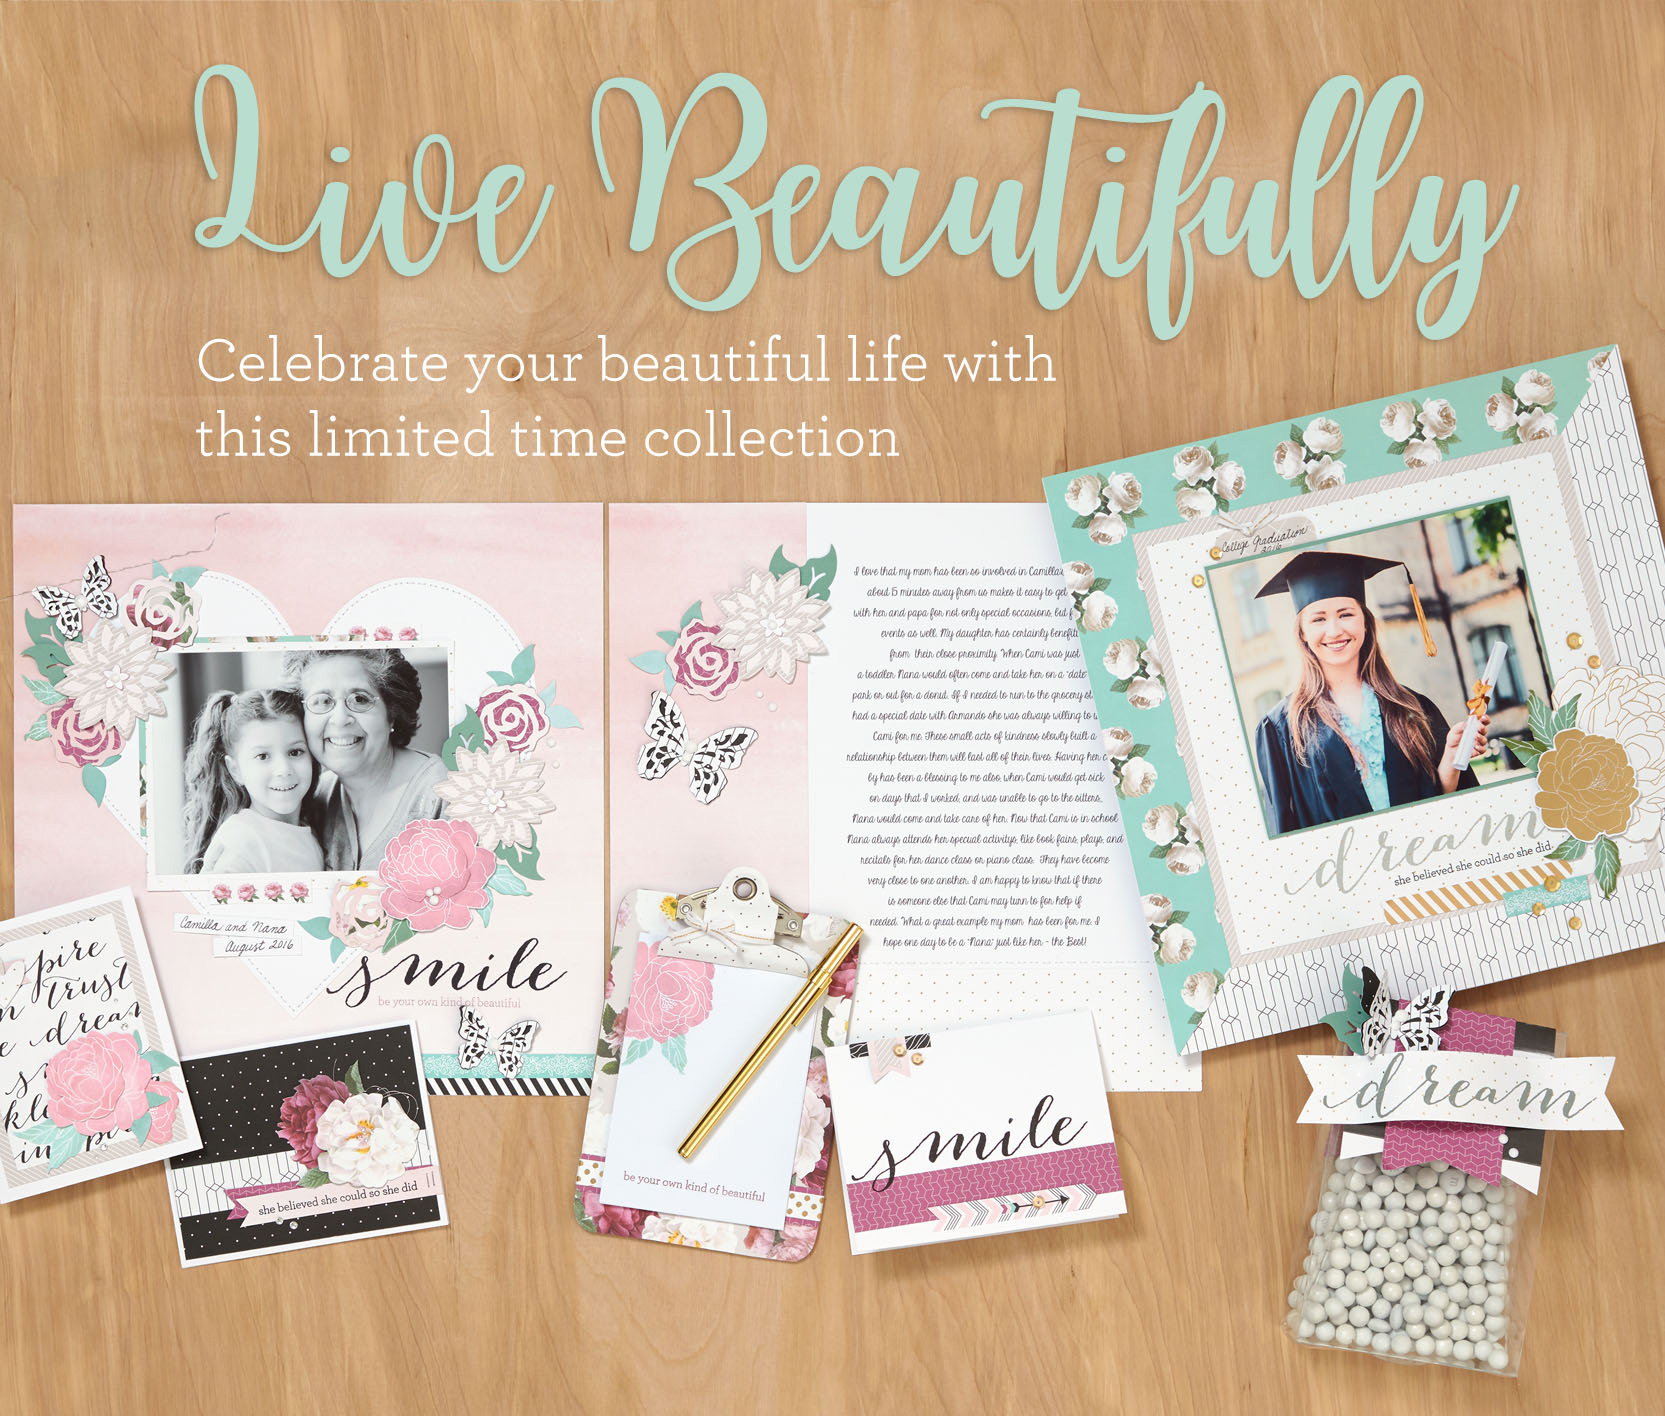 CTMH May Special - Live Beautifully products to celebrate National Scrapbooking Month!